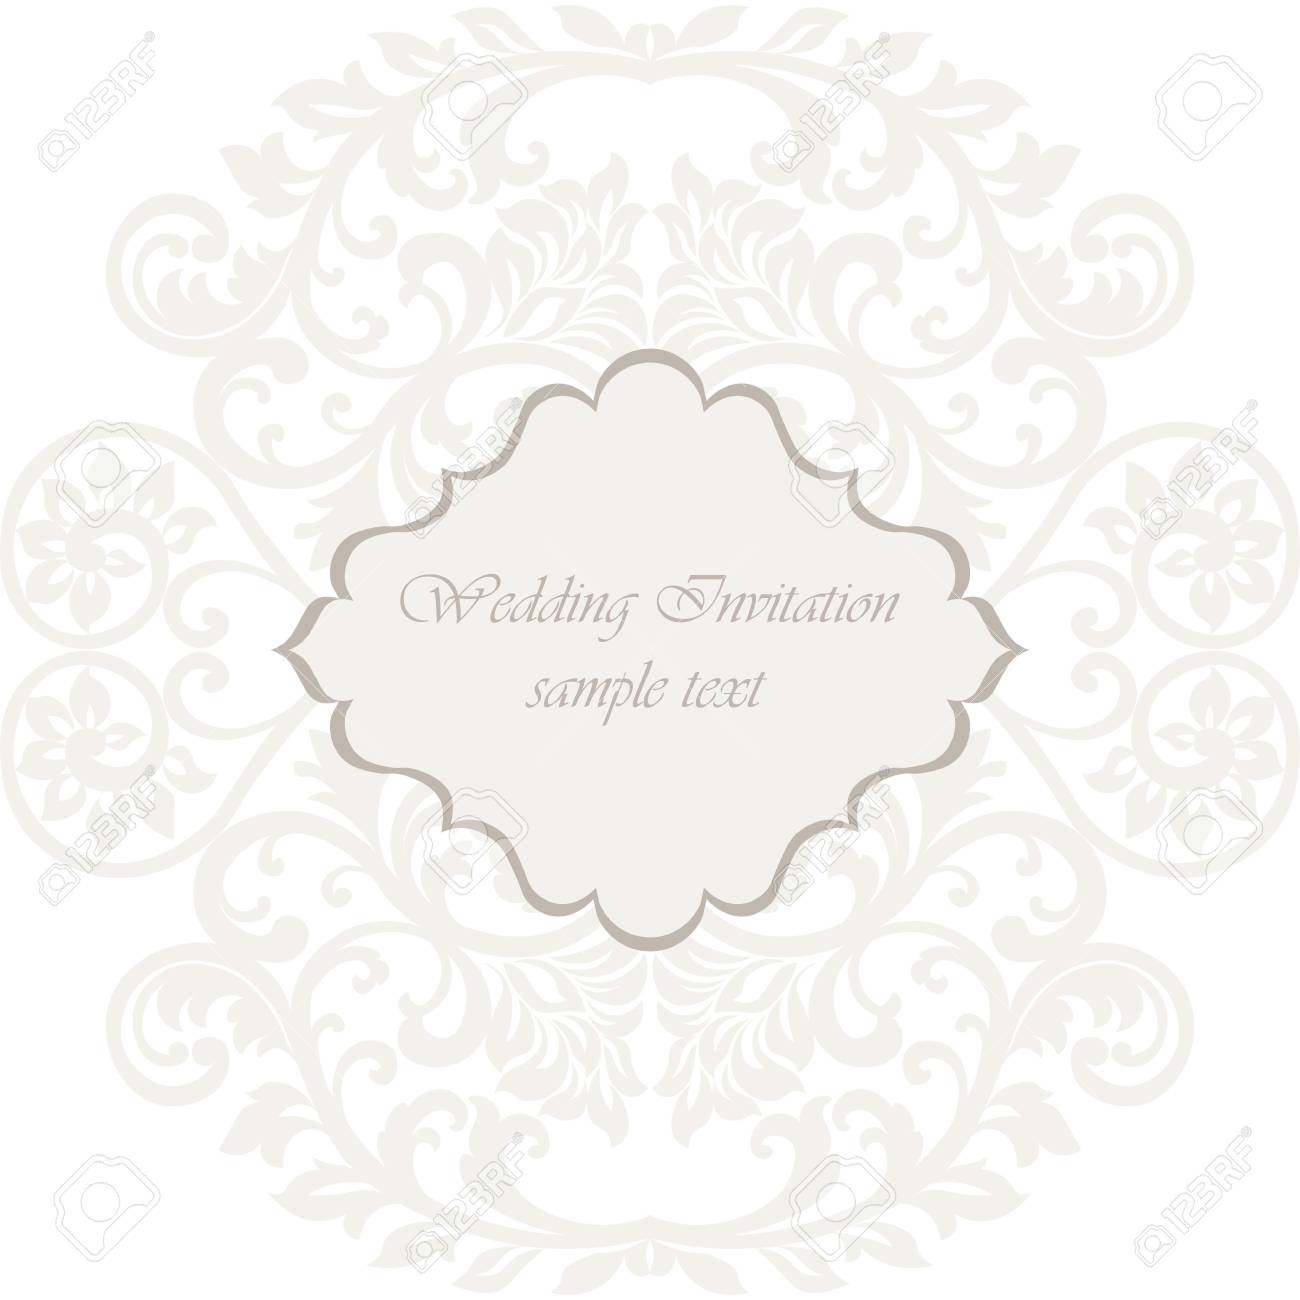 Wedding lace card elegant lace frame vector greeting card or elegant lace frame vector greeting card or invitation template for wedding invitation or greeting card stopboris Image collections